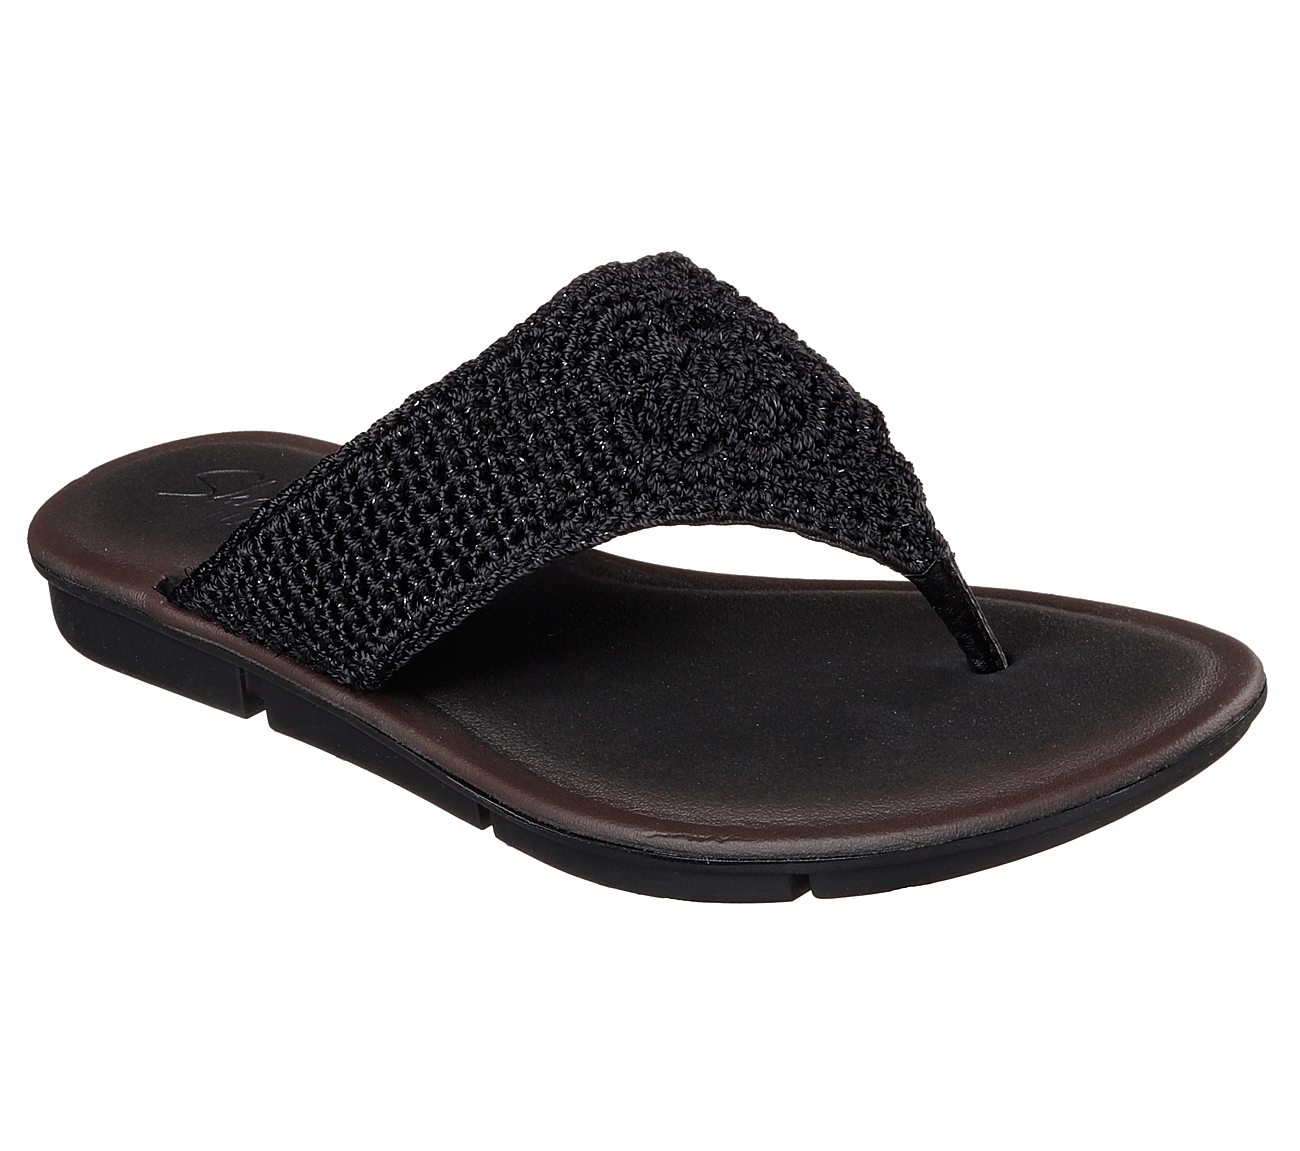 d73dccd425dcb Buy SKECHERS Indulge 2 - Beach Angel Flip Flops Shoes only  55.00